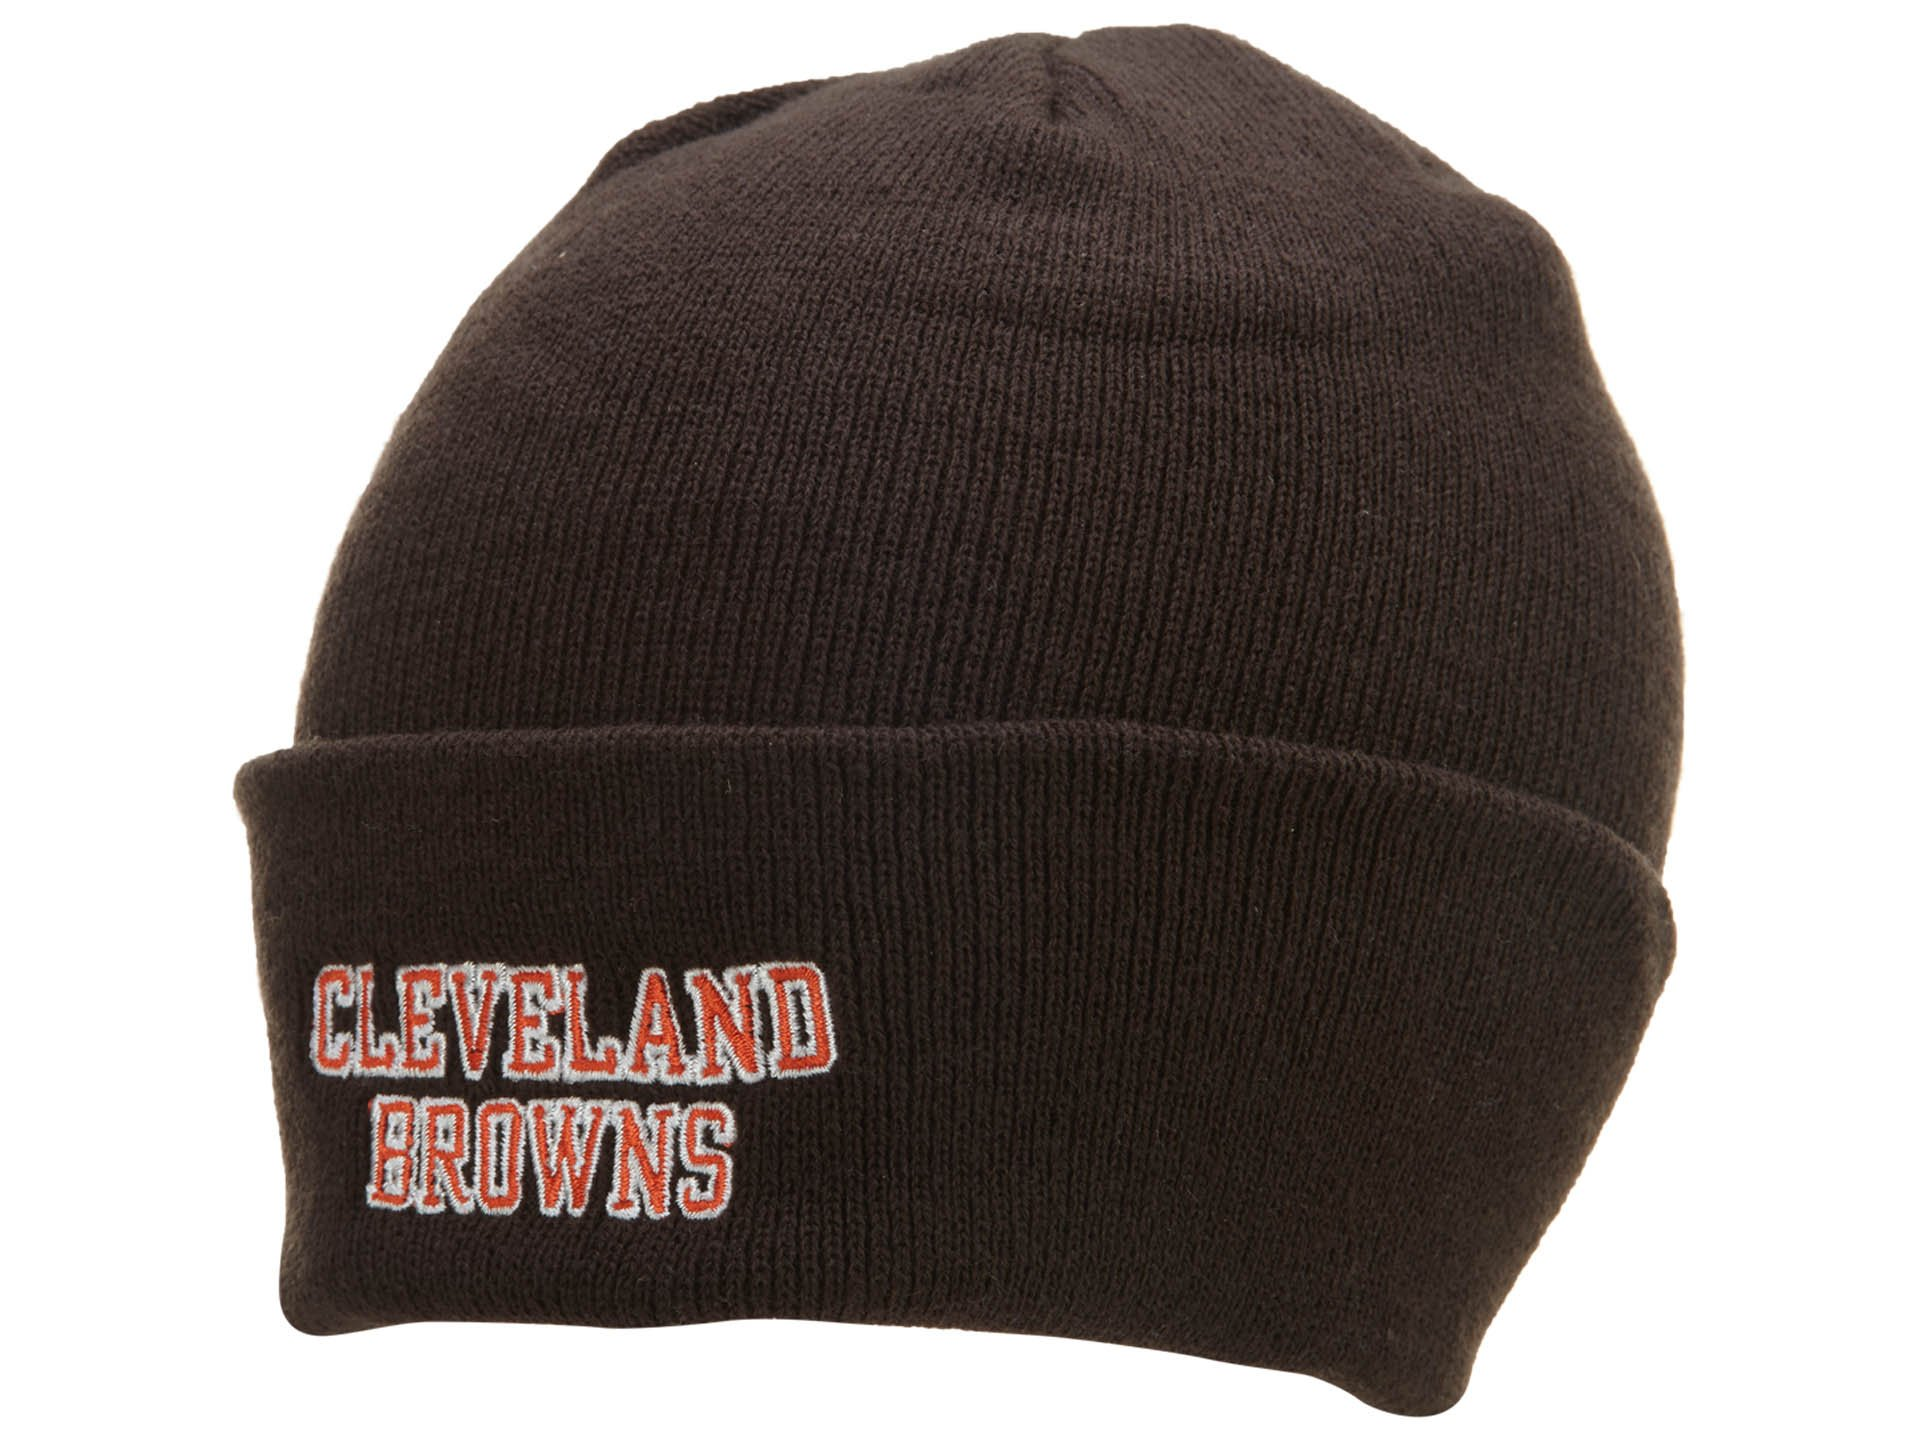 Cleveland Browns Knit Hat: Brown Stadium Cuffed Knit Cap by Reebok (Image #1)